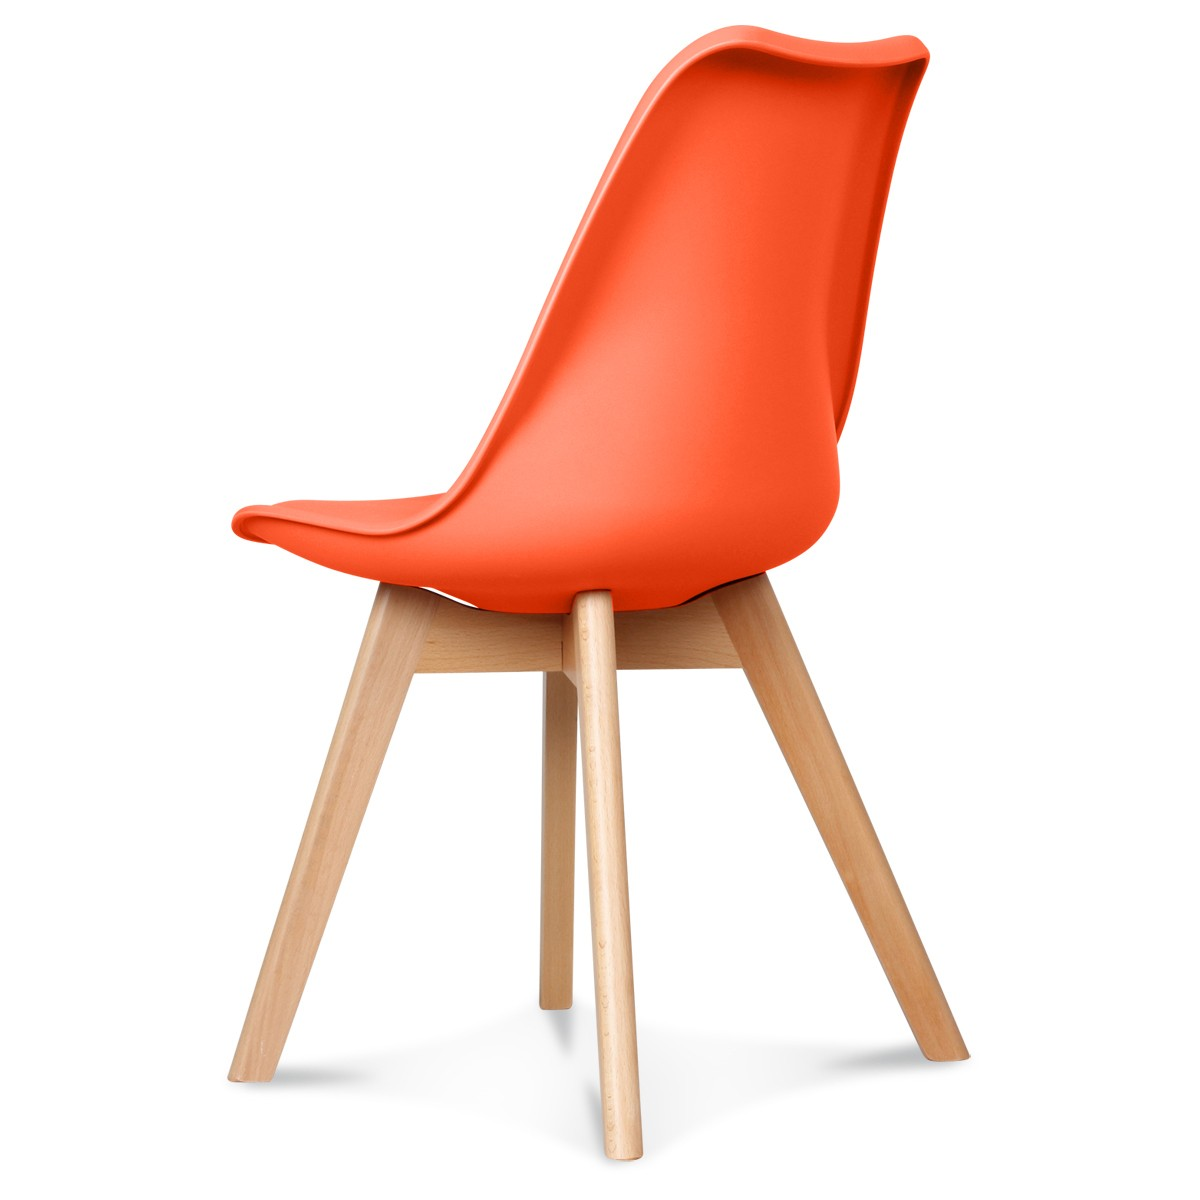 Chaise Scandinave Orange Chaise Design Scandinave Orange Scandy Couleur Orange